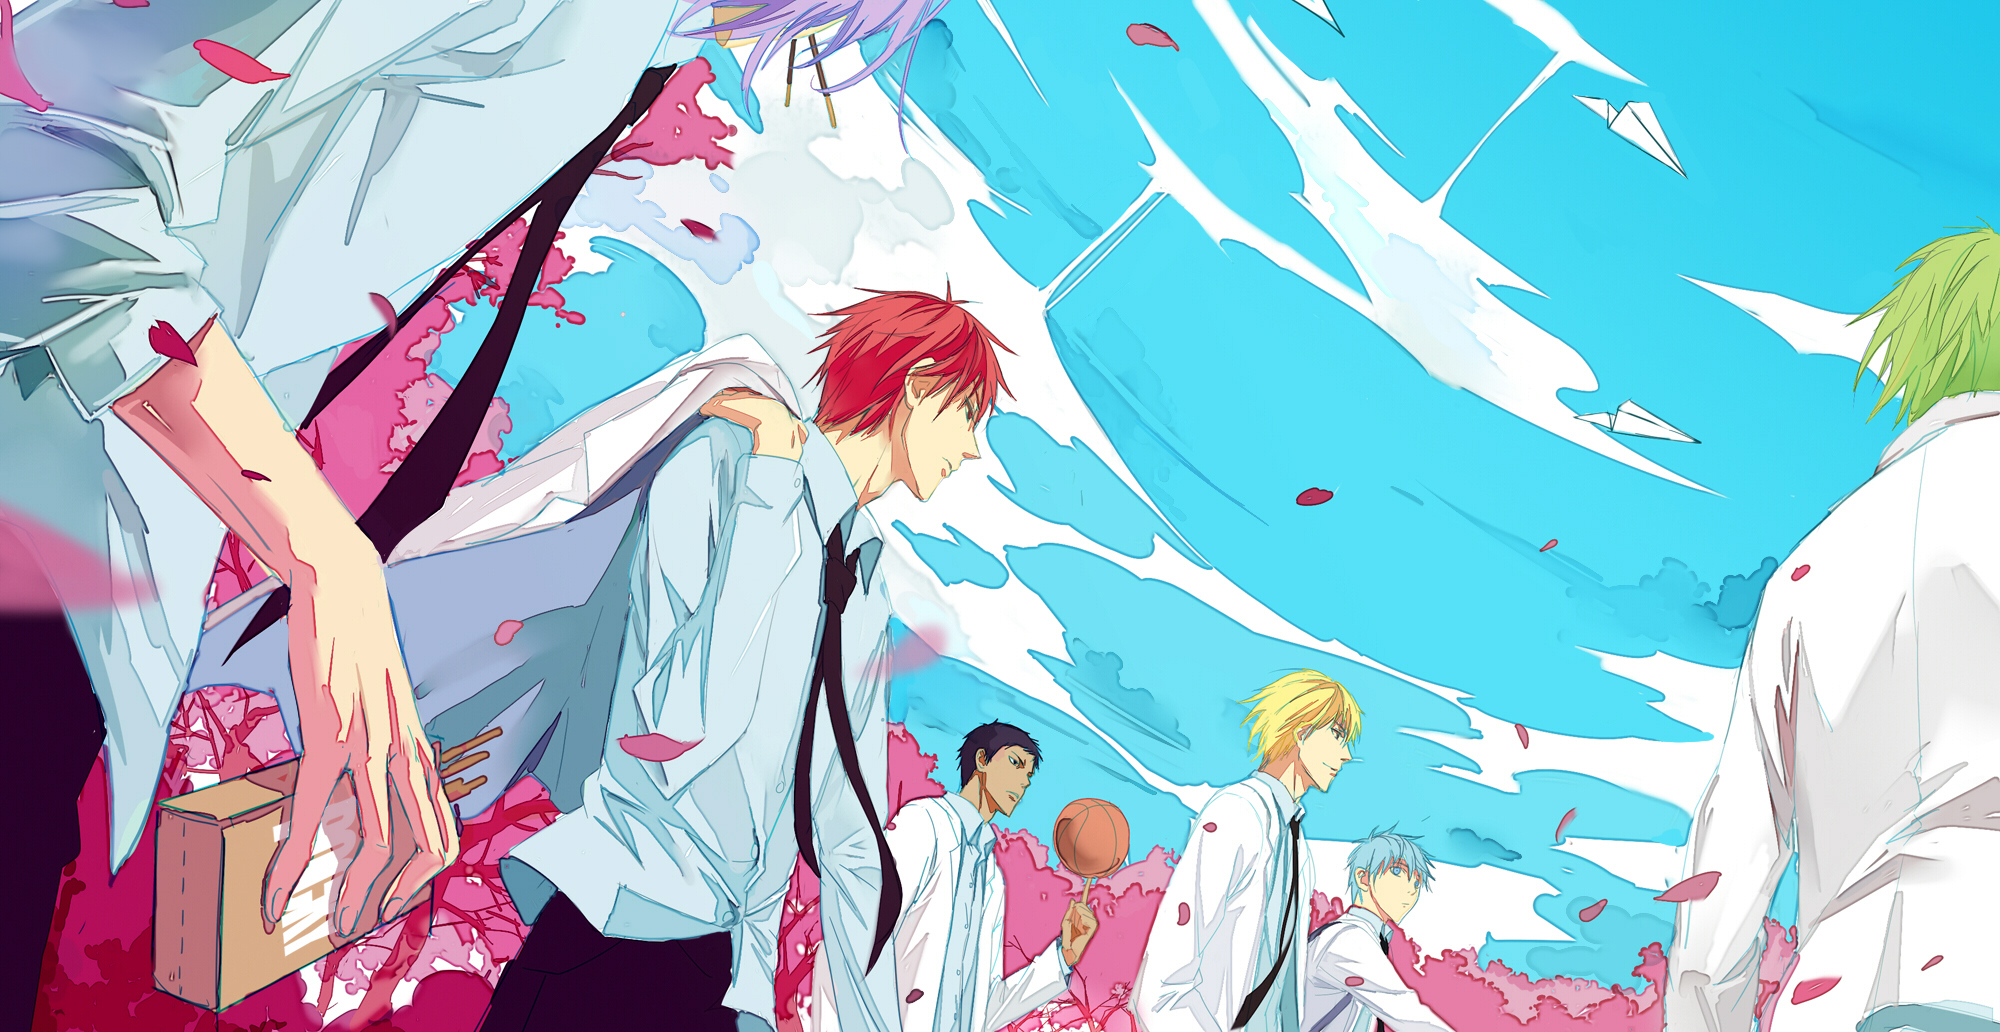 Kiseki no sedai generation of miracles wallpaper page 2 kiseki no sedai download kiseki no sedai image voltagebd Image collections